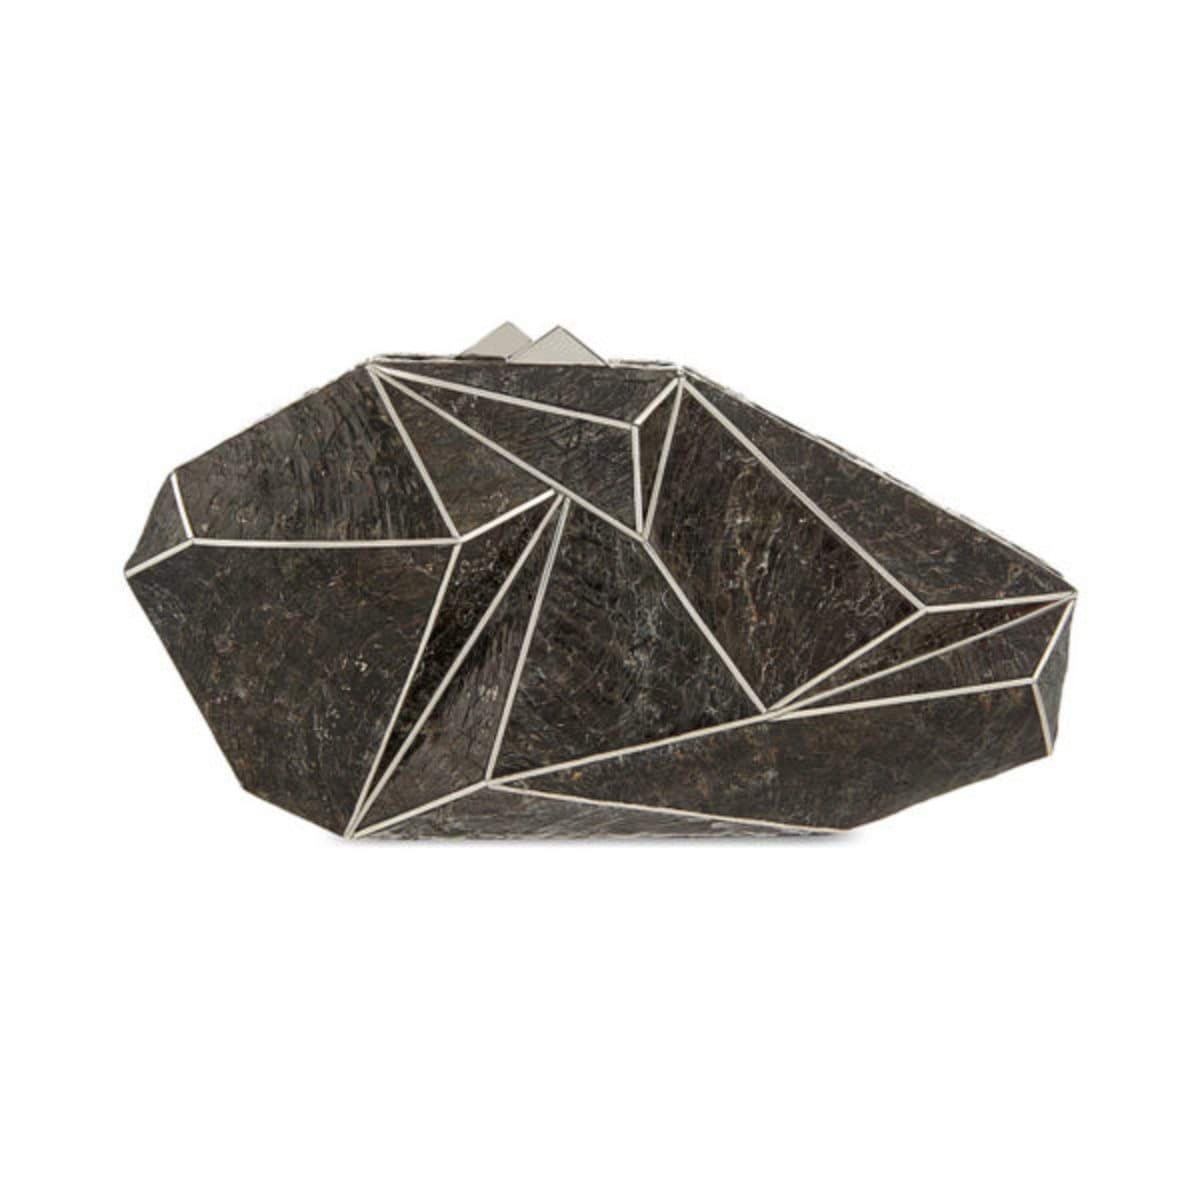 Nathalie-Trad-polygon-clutch-600x600